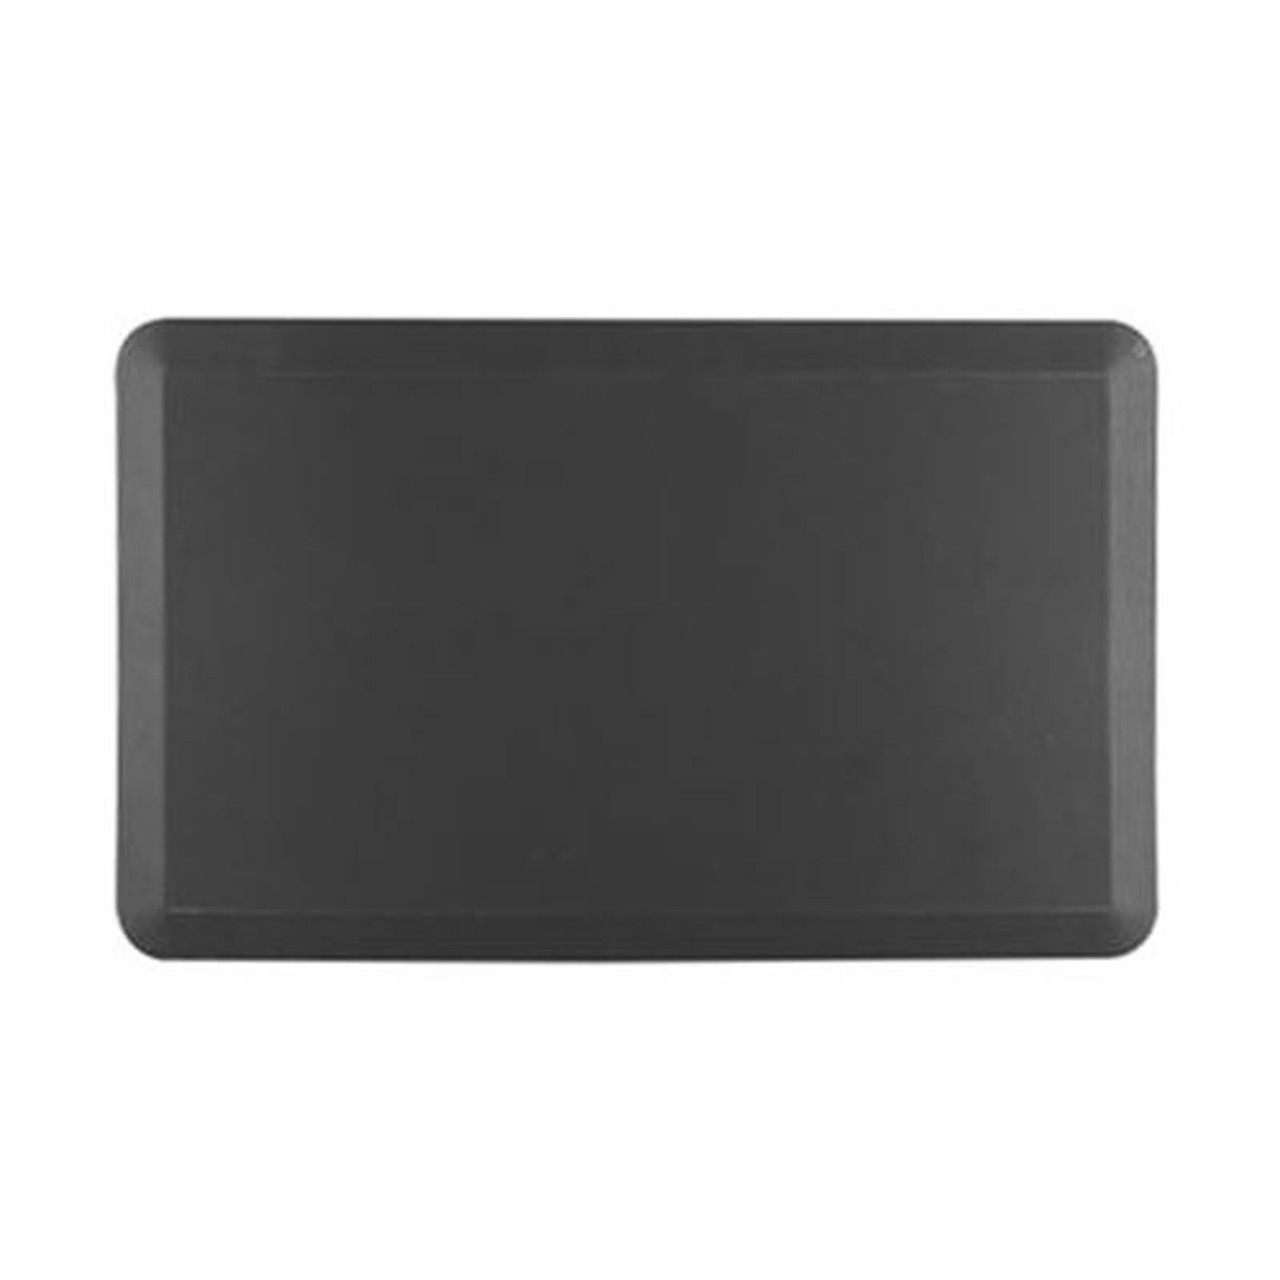 Image for Brateck Anti-fatigue Standing Mat (510 x 762 x 20mm) CX Computer Superstore